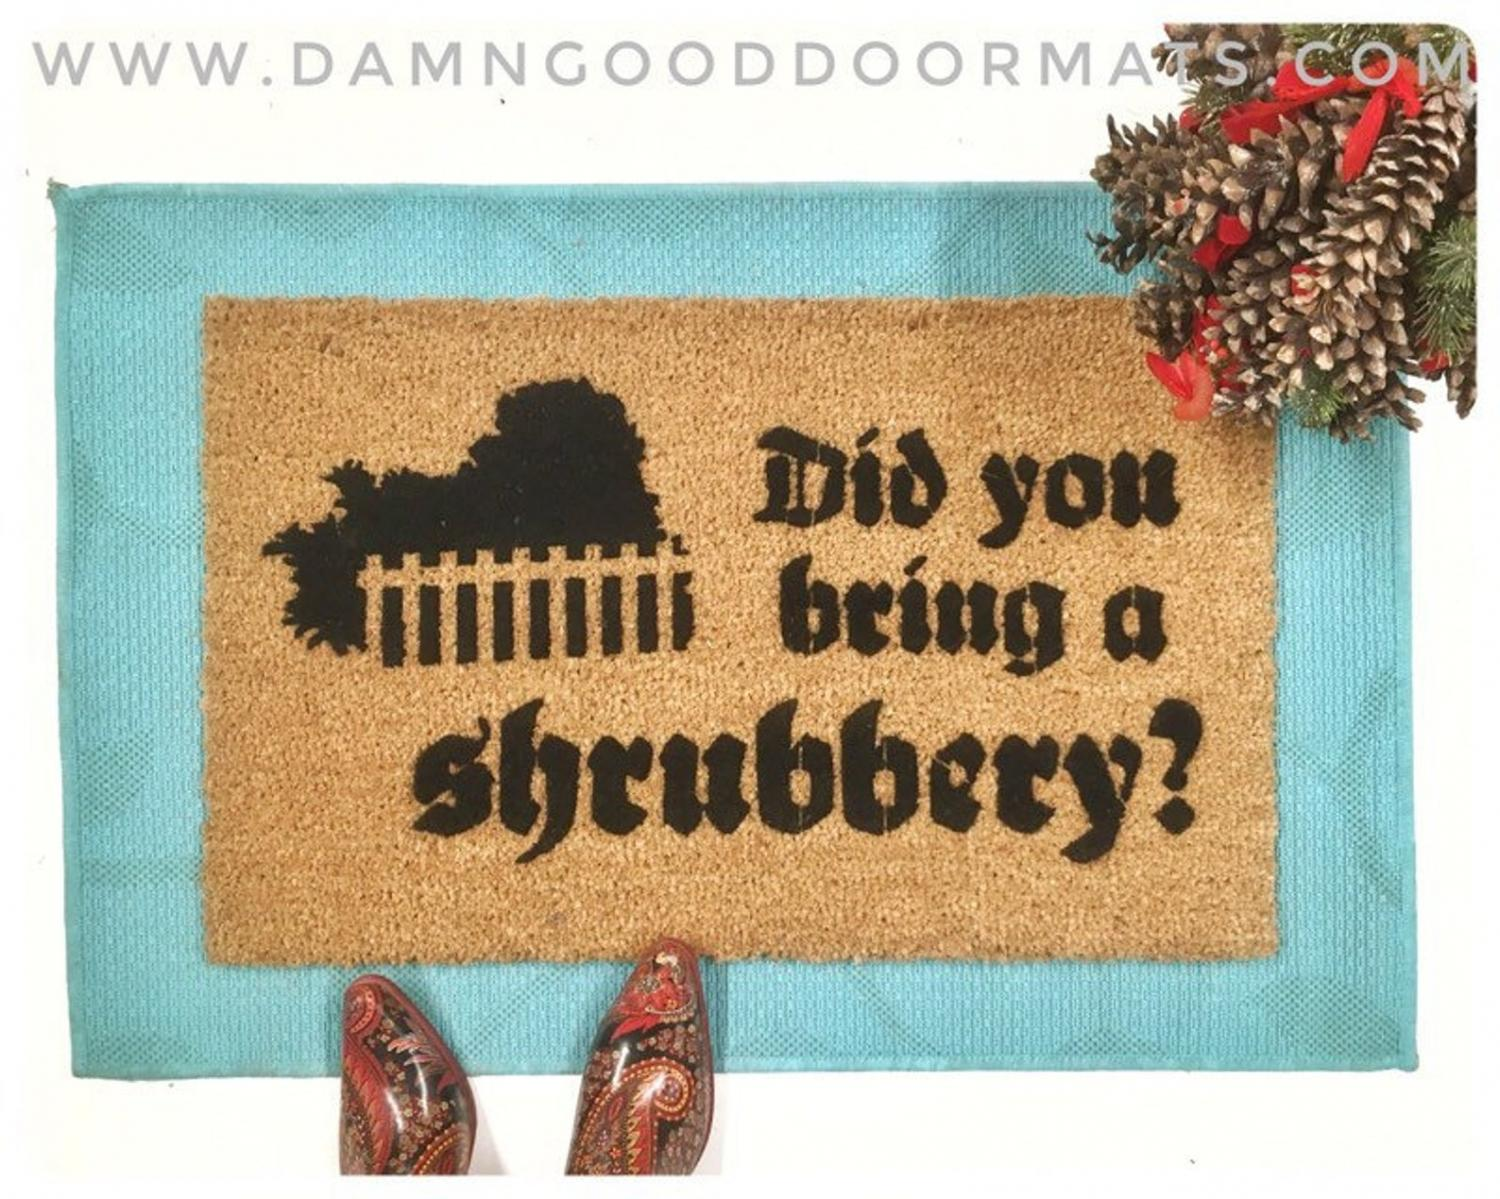 Monty Python Doormat - Did you bring a shrubbery funny doormat